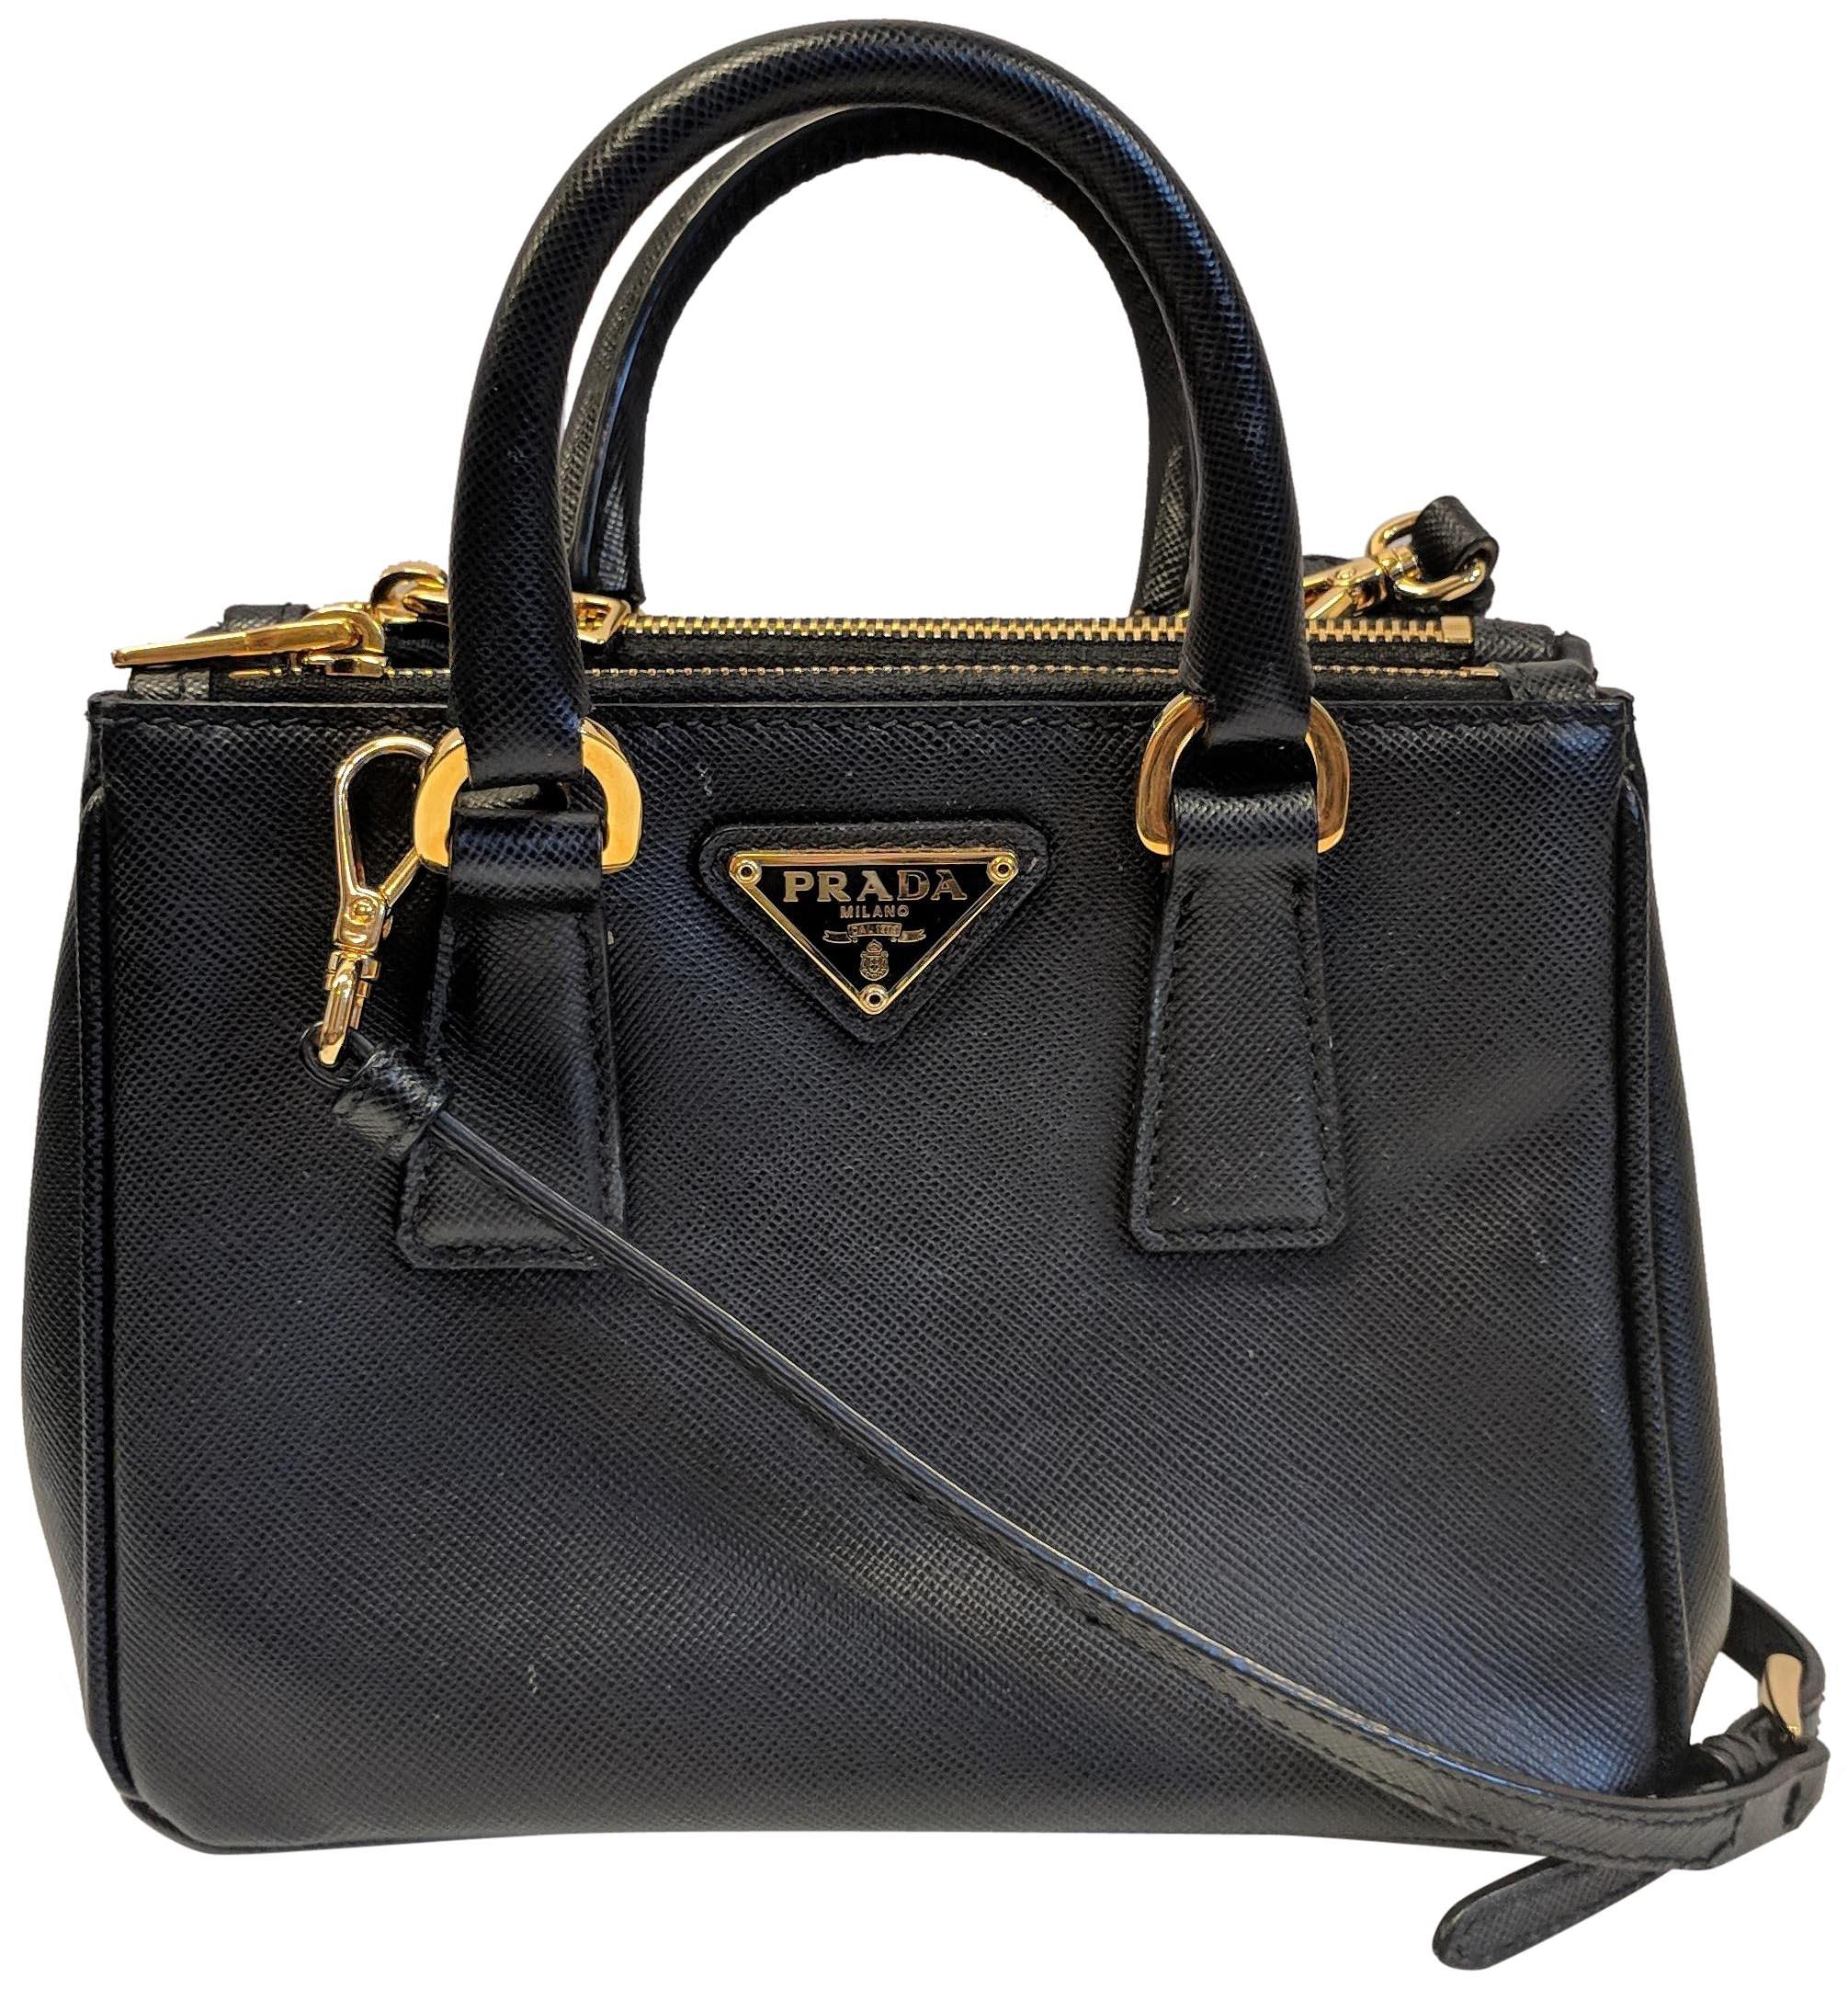 e08096e6f281 ... coupon code for prada saffiano double zip nano mini cross body bag  8c0e8 334ee